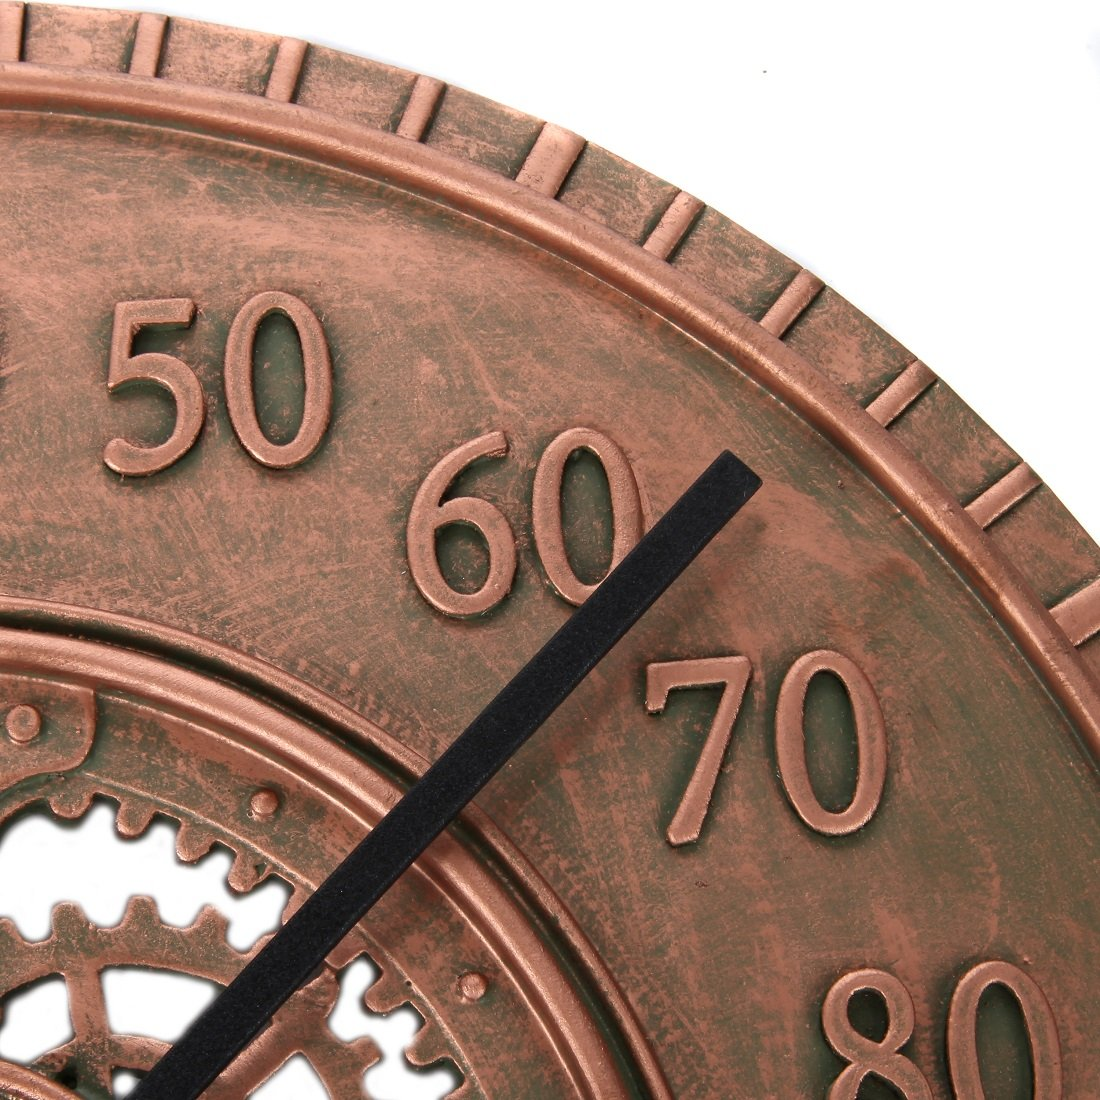 Lily's Home Hanging Wall Thermometer, Steampunk Gear and Cog Design with a Bronze Finish, Ideal for Indoor or Outdoor Use, Poly-Resin (13 Inches Diameter) by Lilyshome (Image #5)